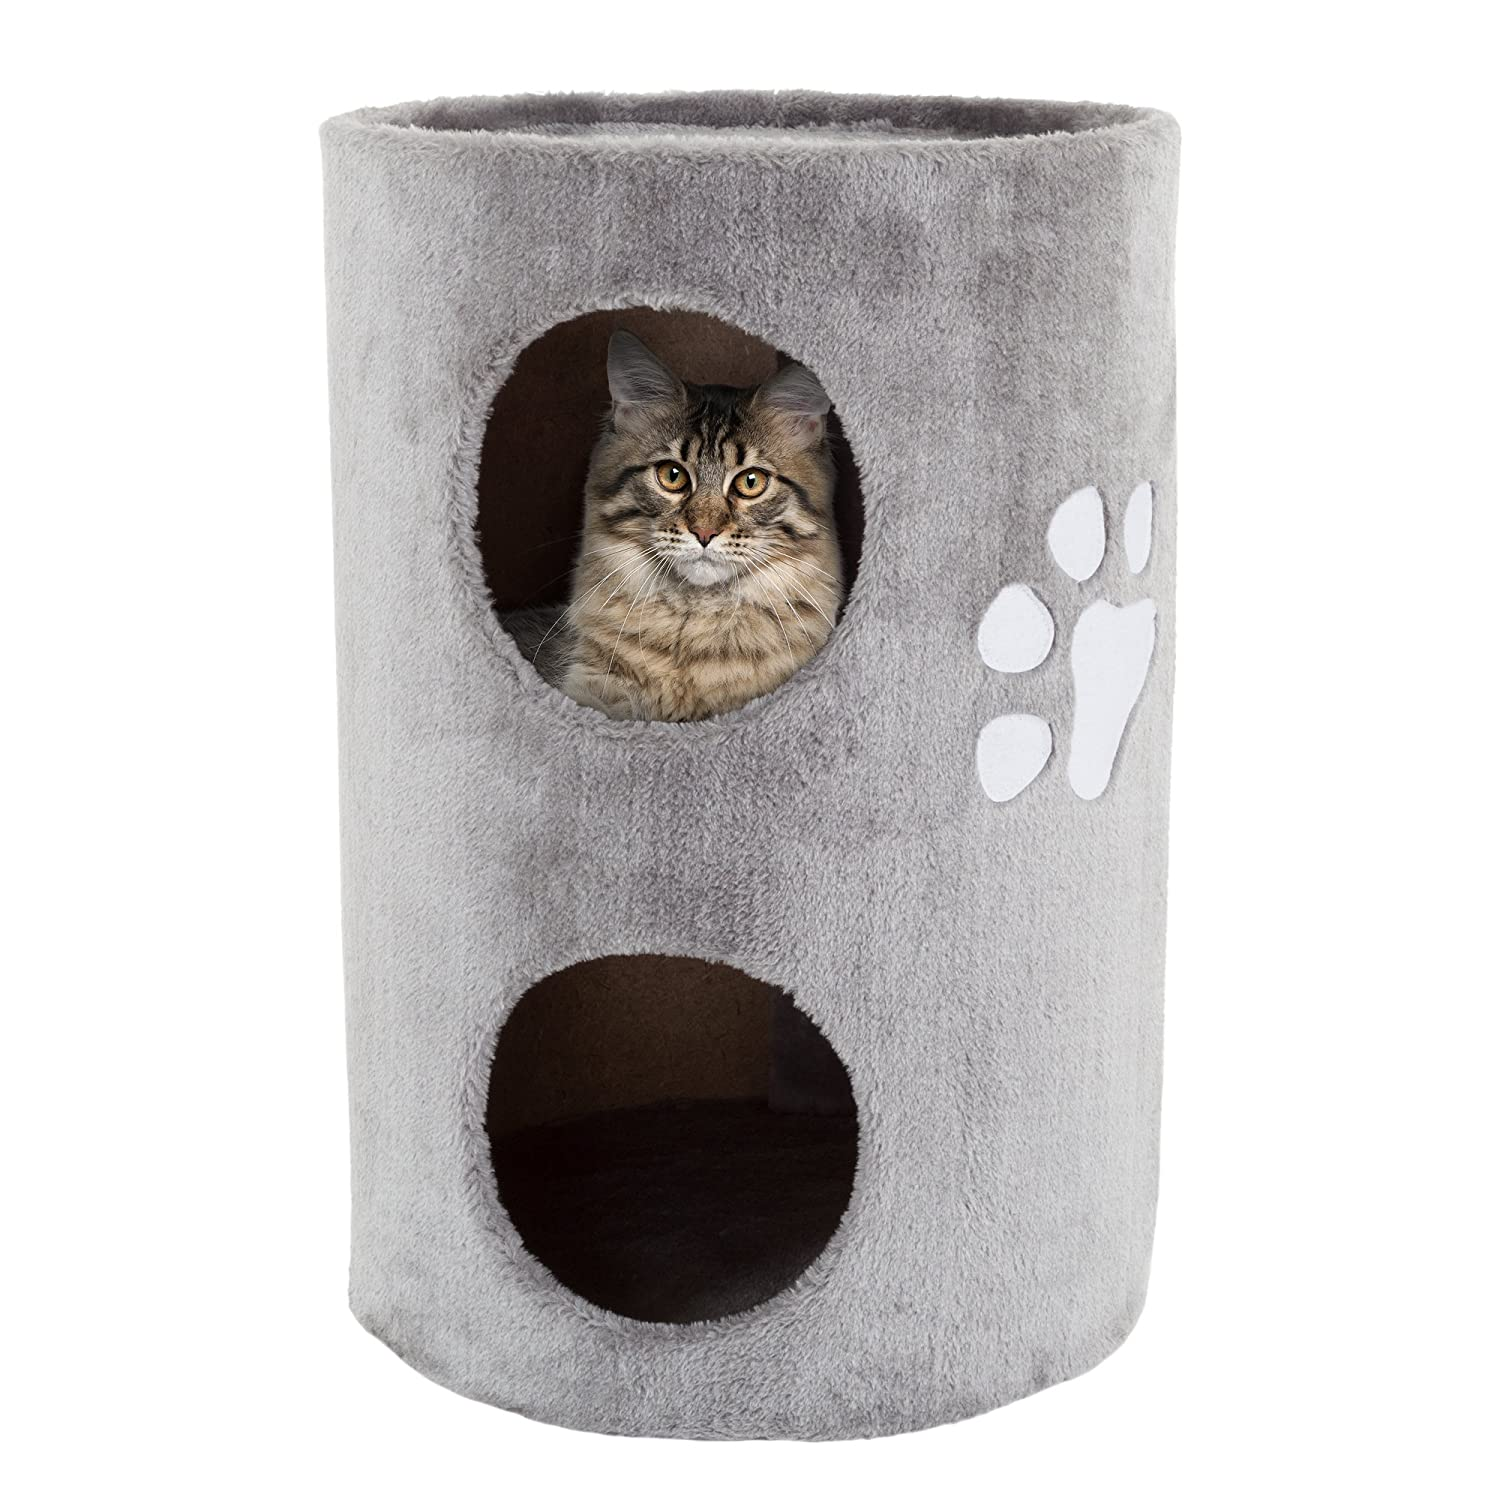 "PETMAKER Cat Condo 2 Story Double Hole with Scratching Surface, 14"" x 20.5"", Gray"